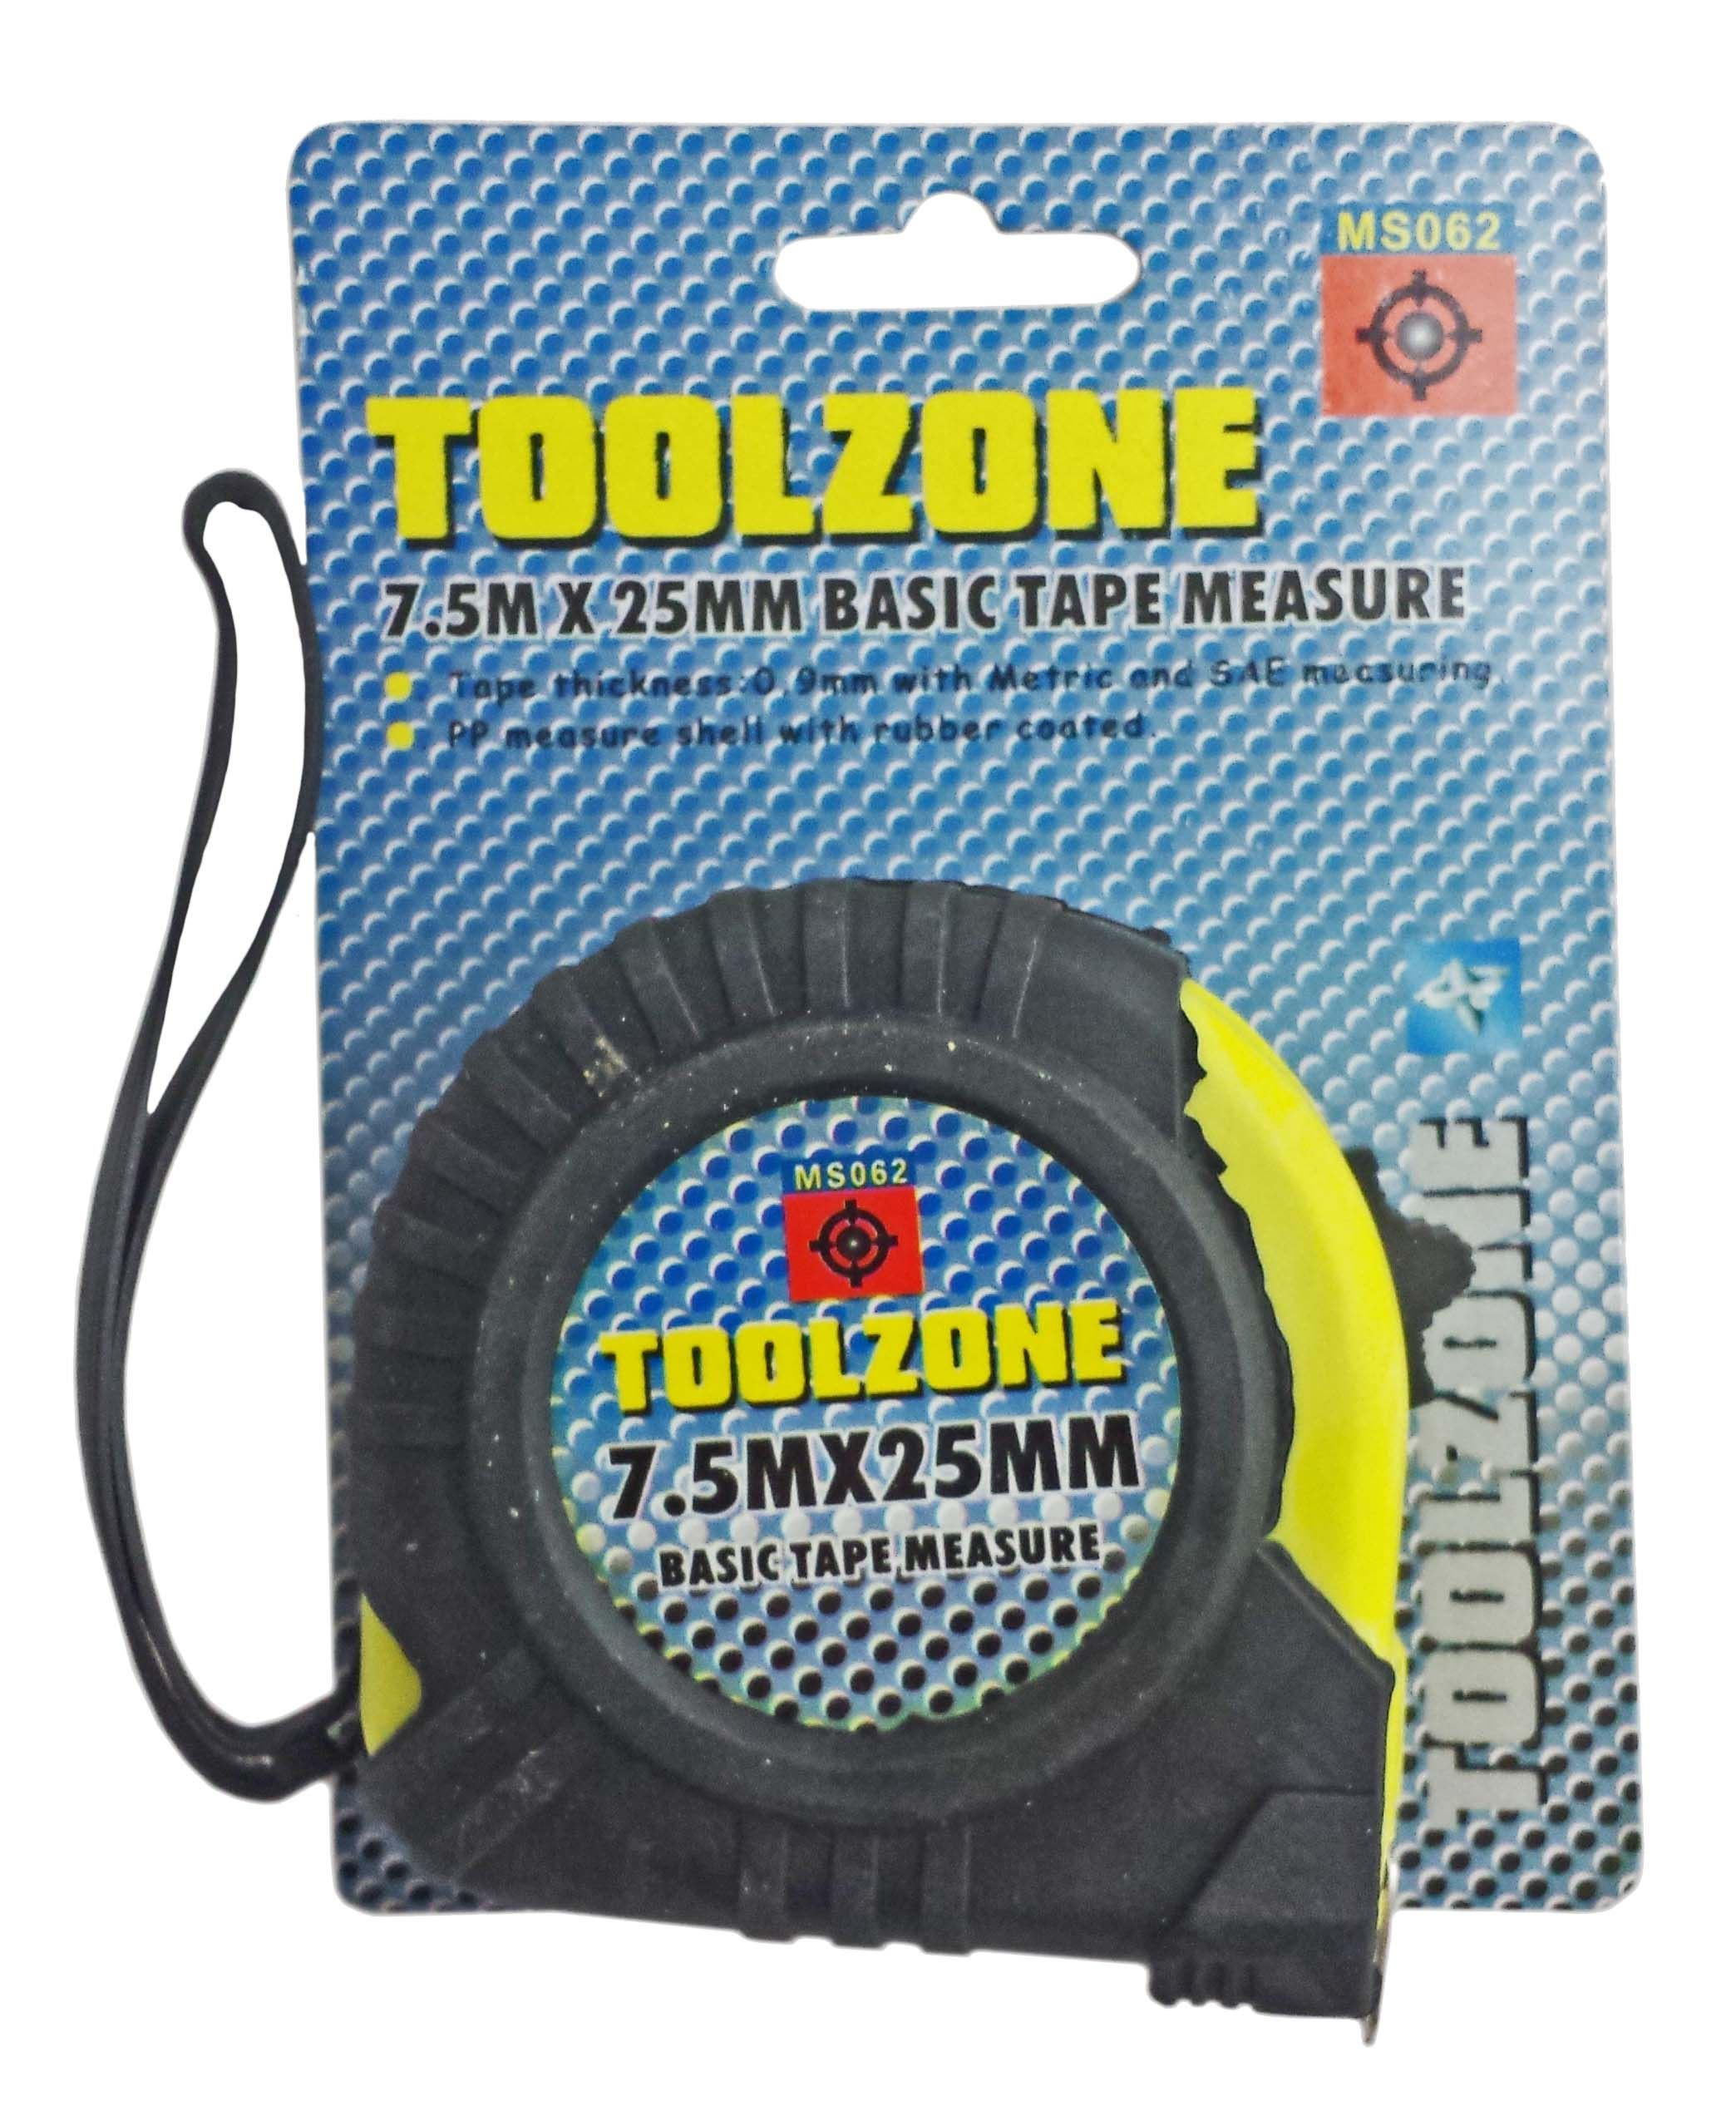 Toolzone 7.5M Basic Tape Measure